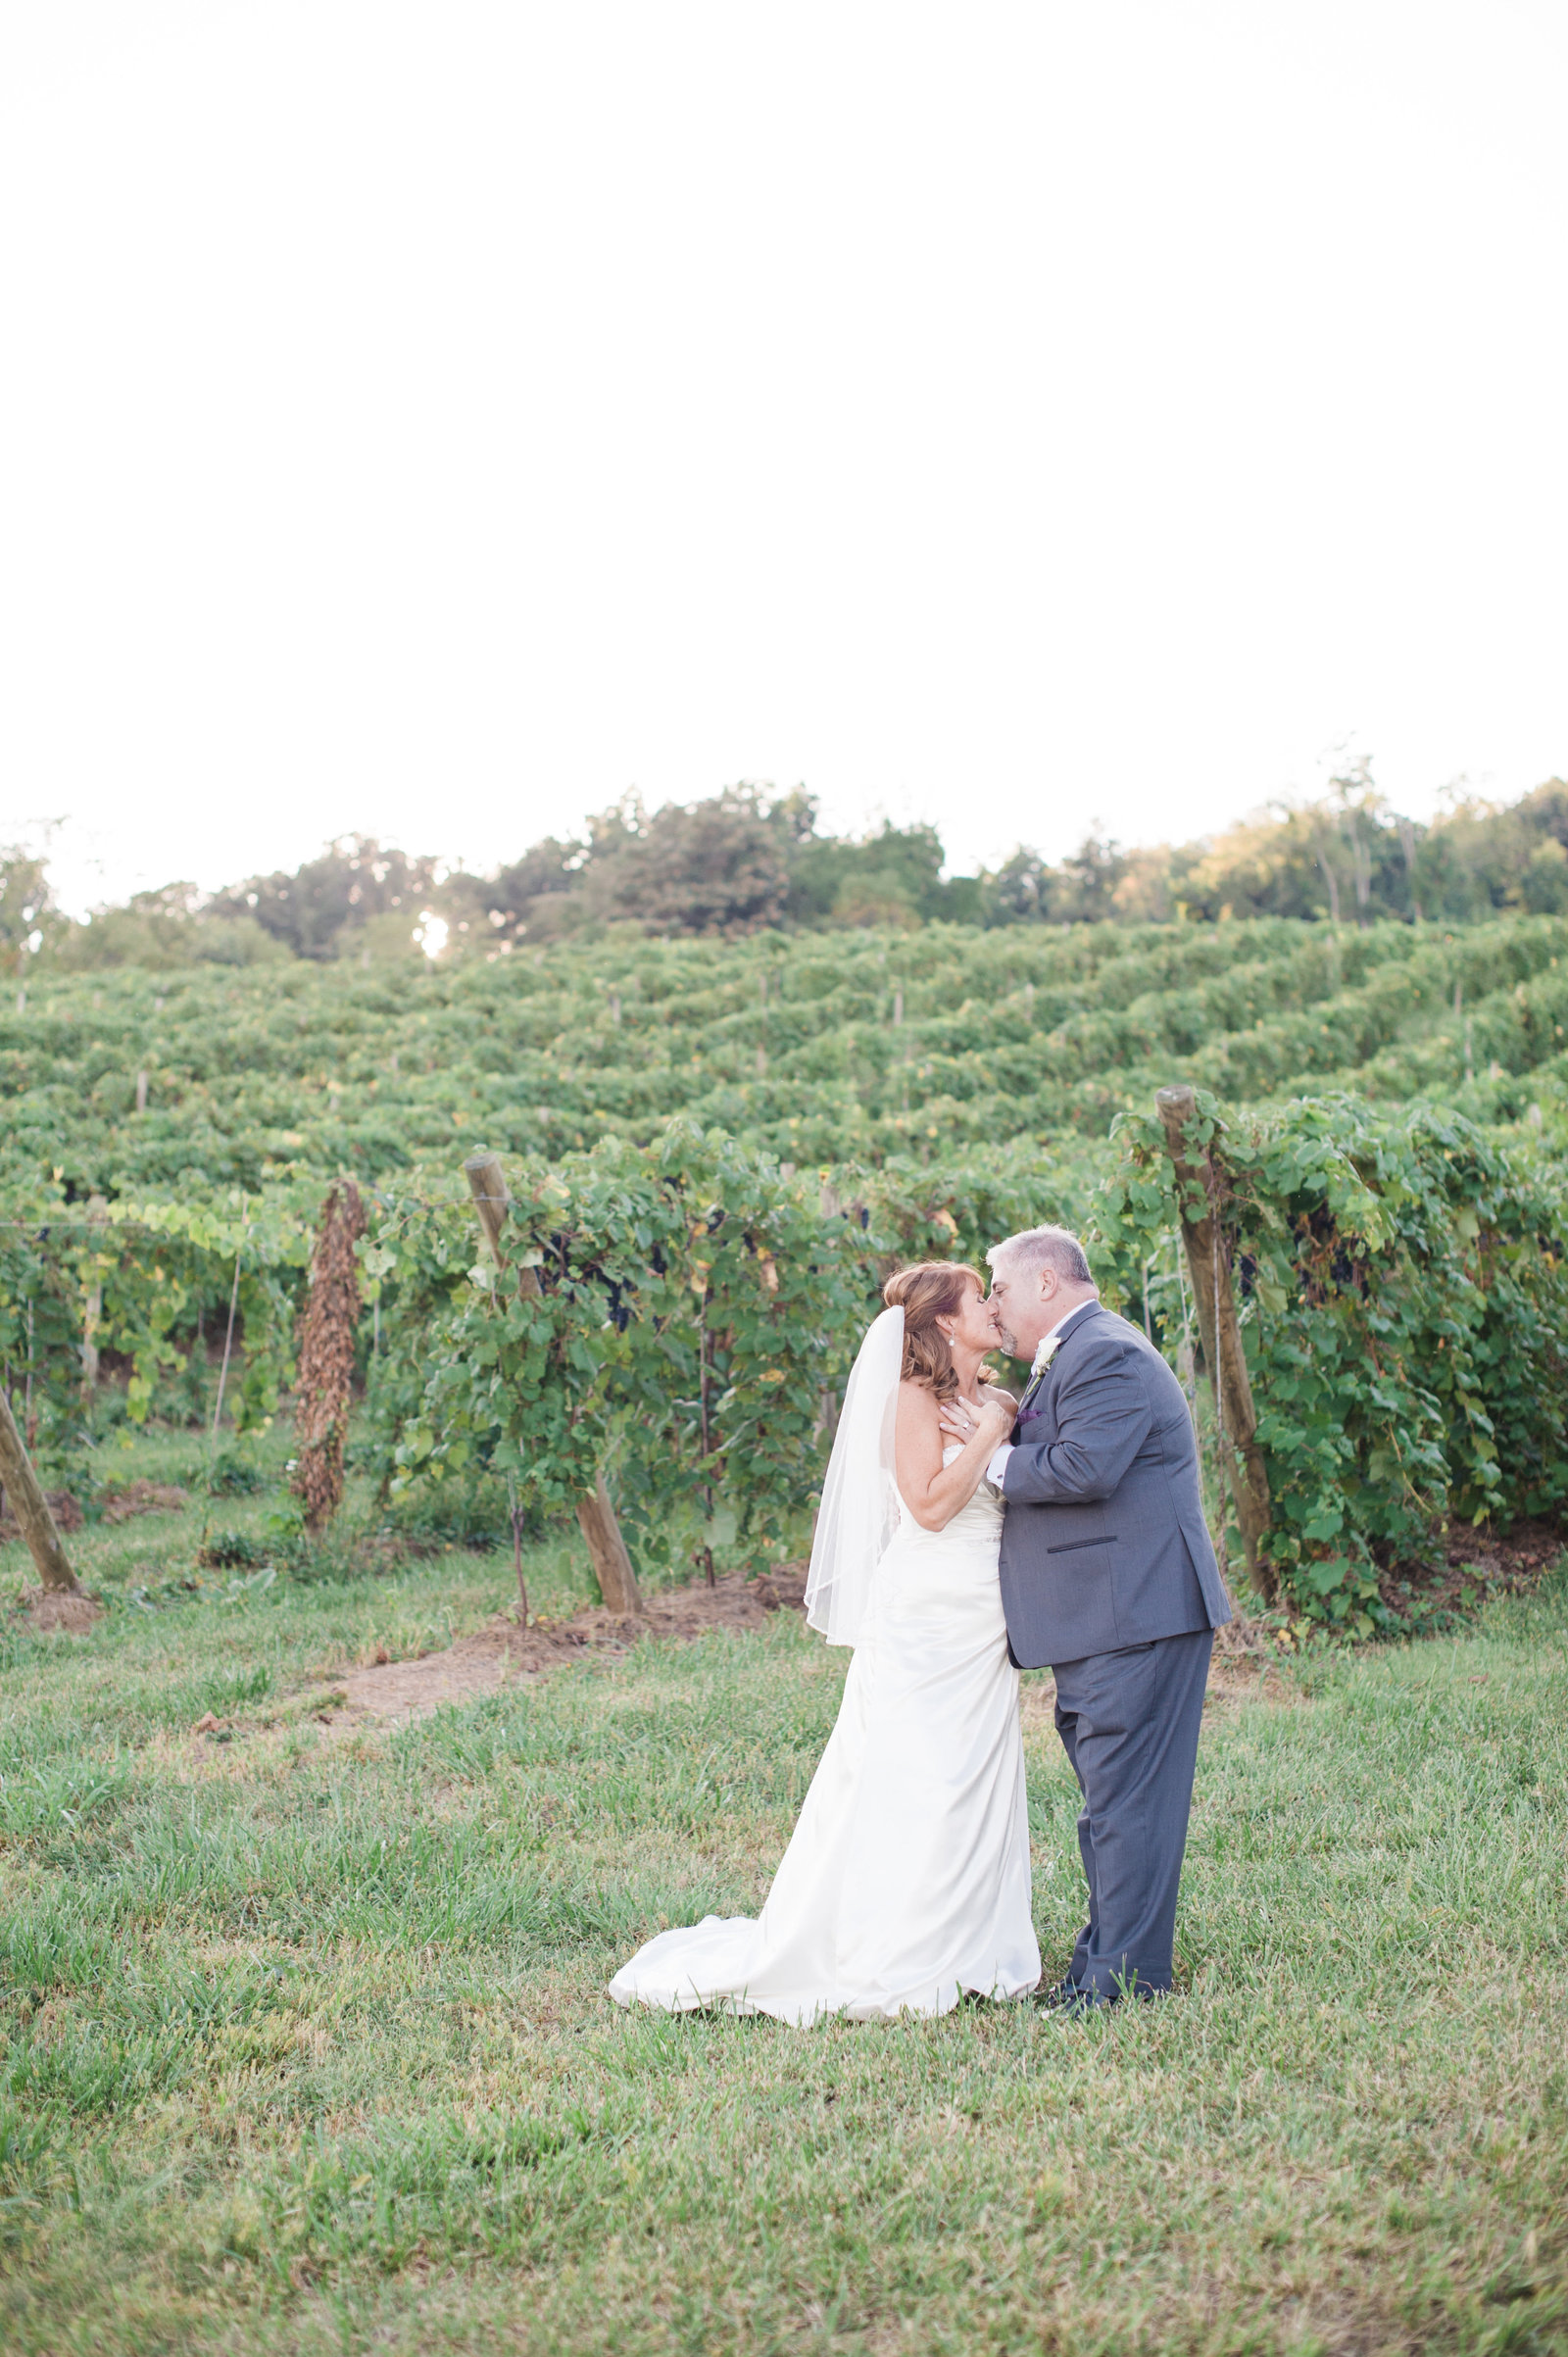 Bluemont Vineyards Wedding - Virginia Wedding by the Hill Studios - Kim and Alan Married-57